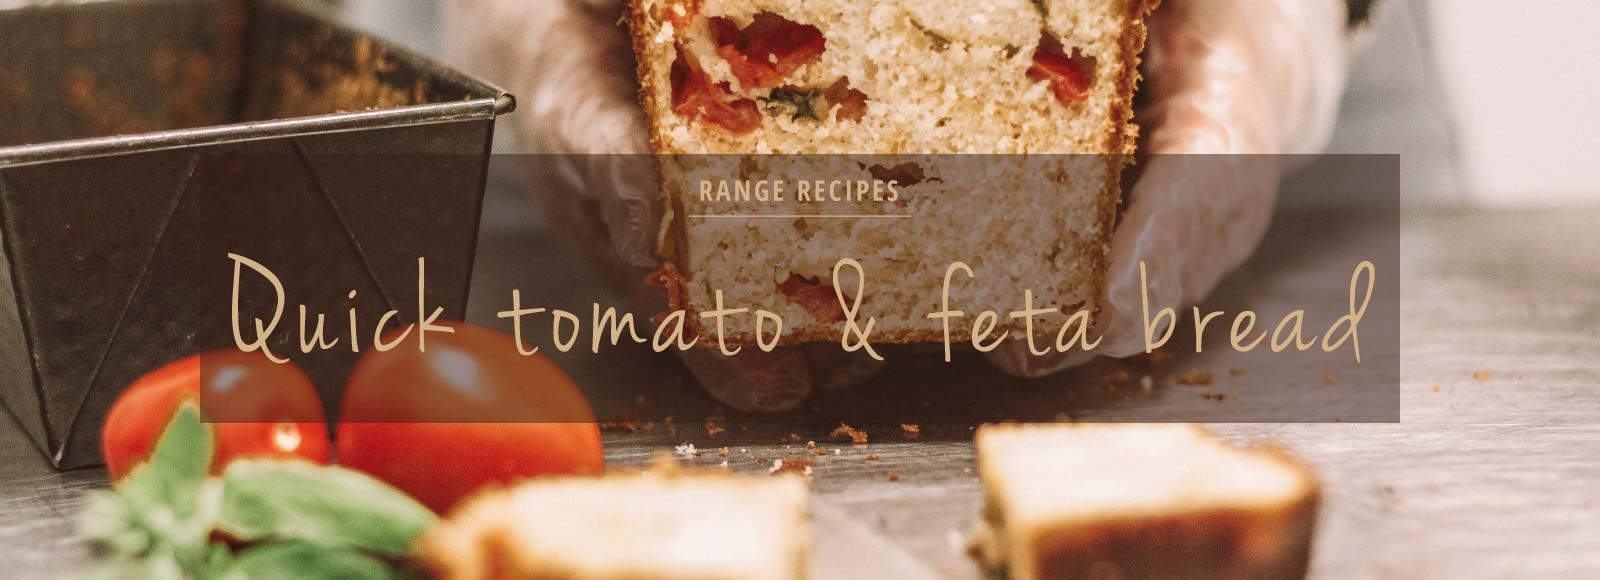 Quick tomato and feta bread